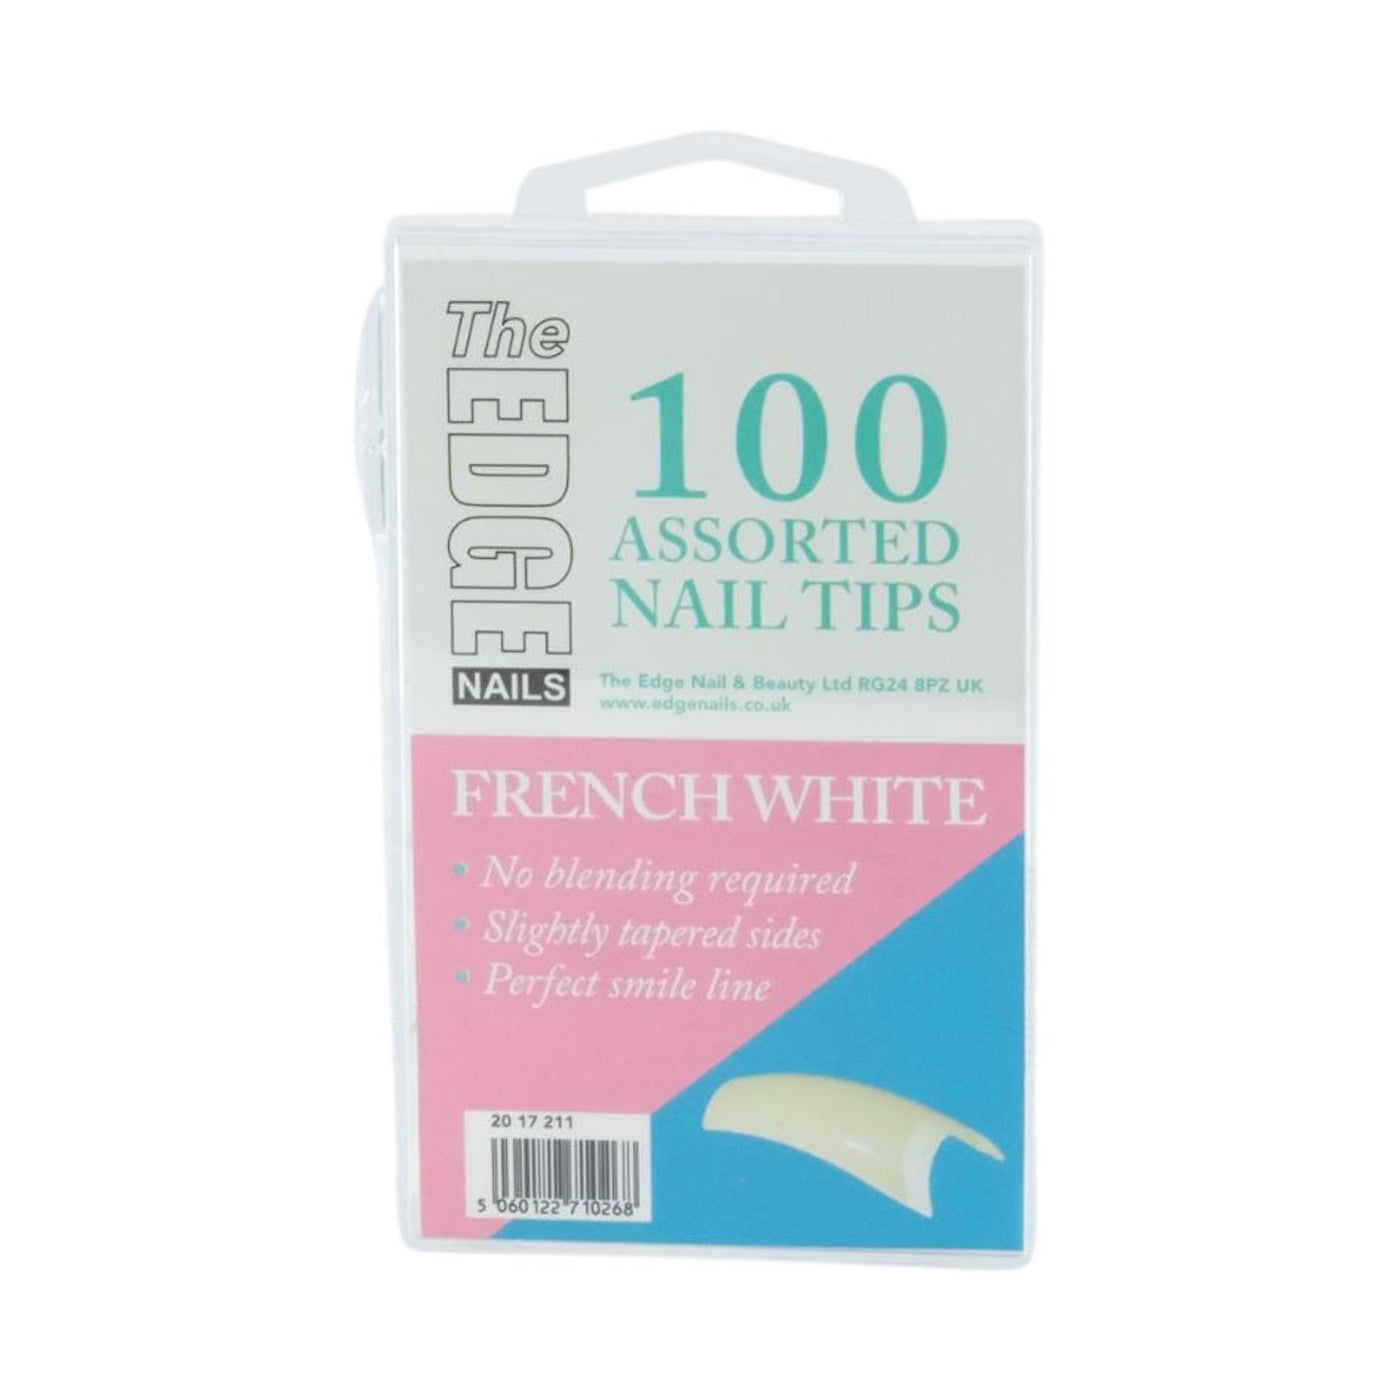 Edge Nails French White Tips Assorted Pack (x100) – Ultimate Hair ...